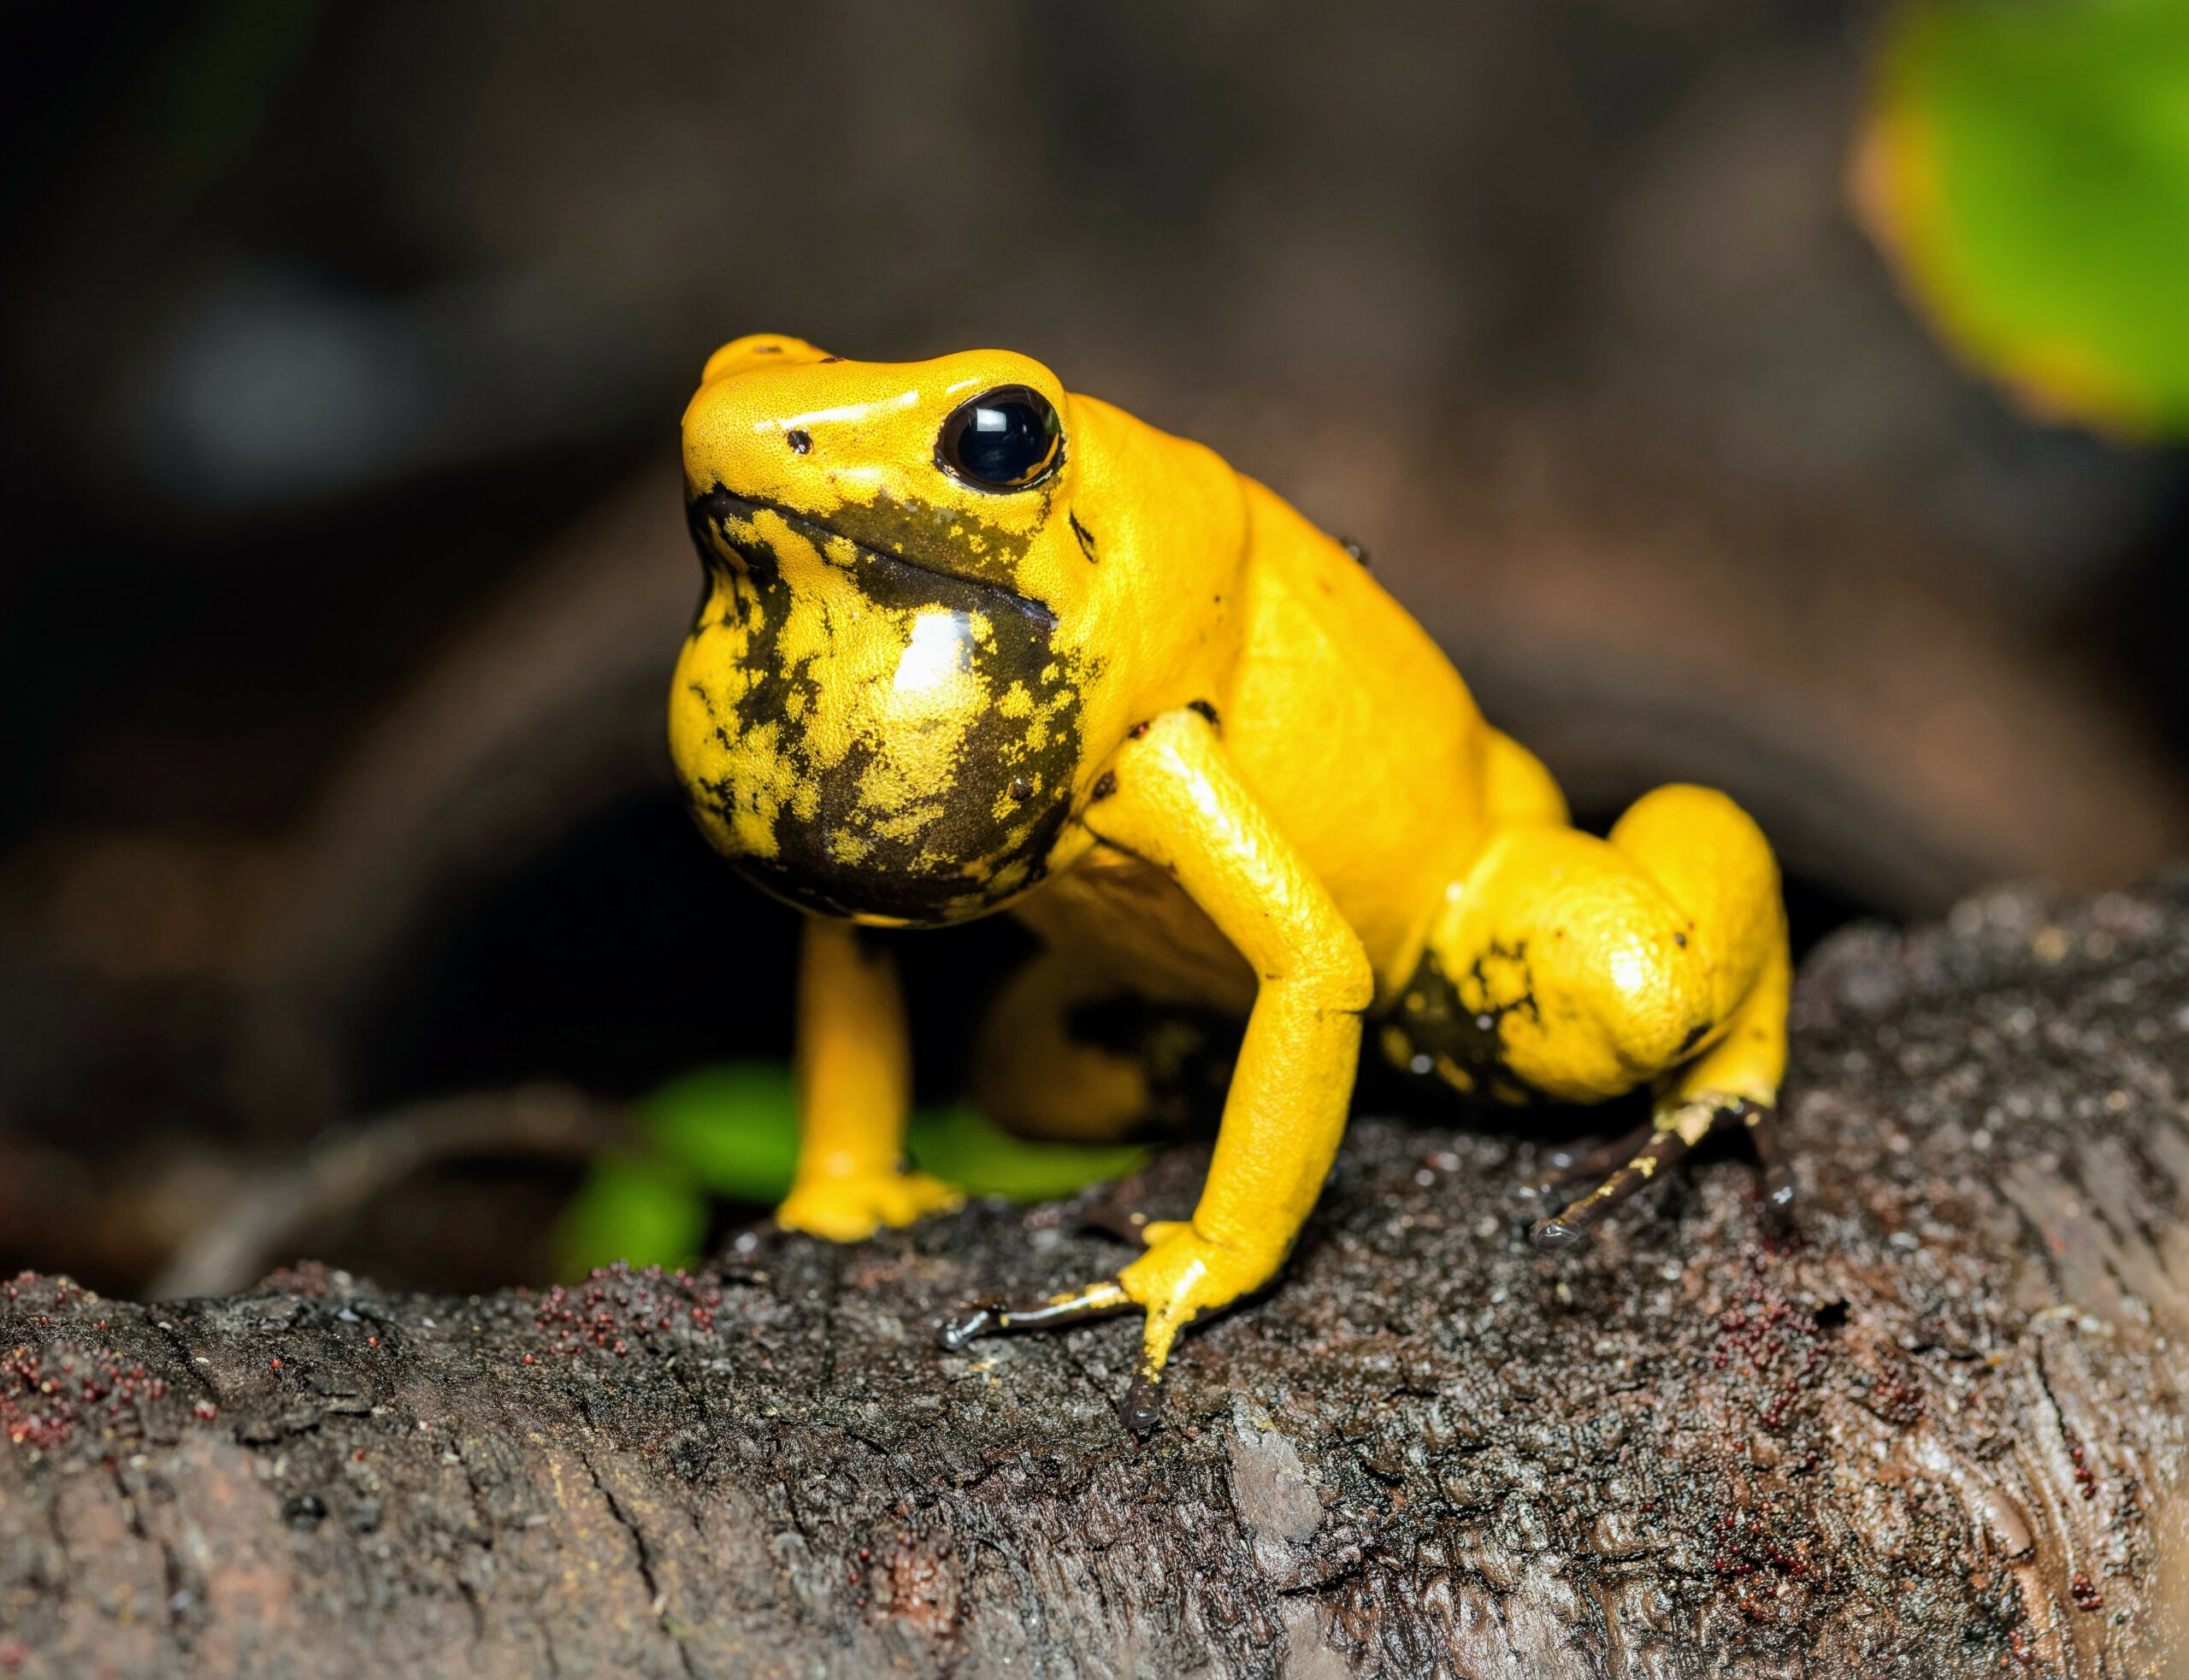 Poisonous animals are fascinating